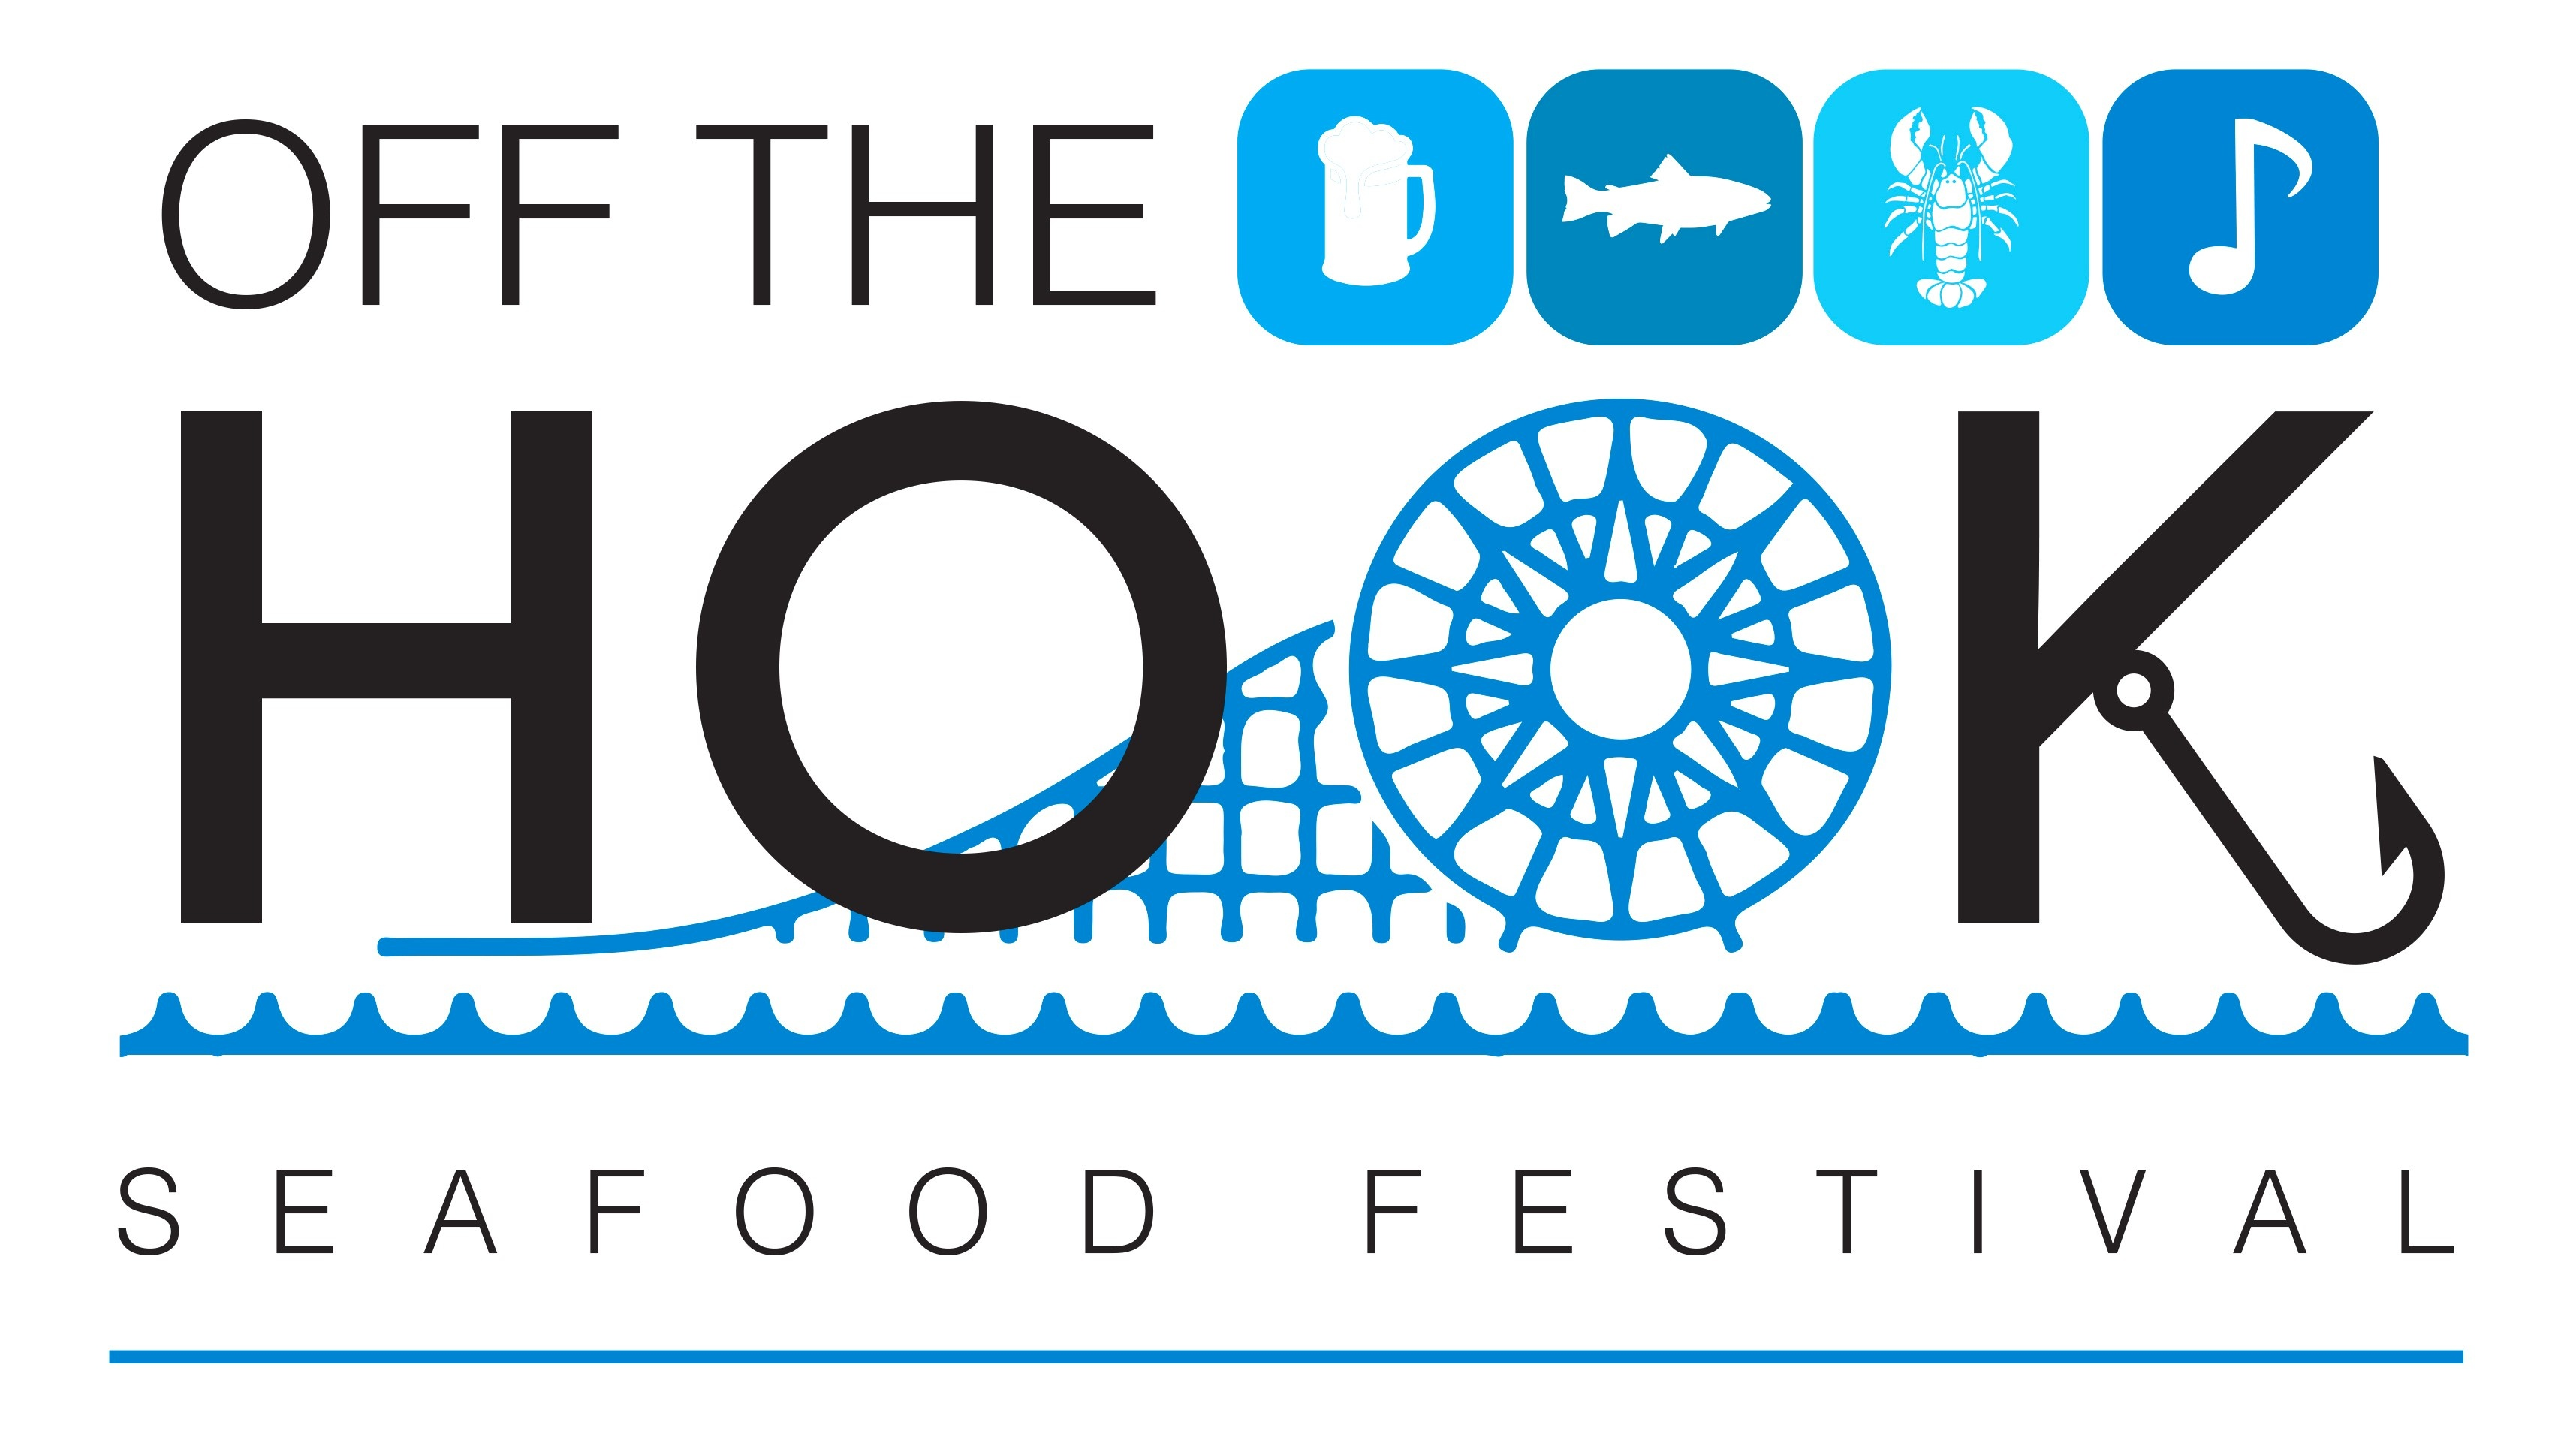 OFF THE HOOK Seafood Festival SponsorMyEvent